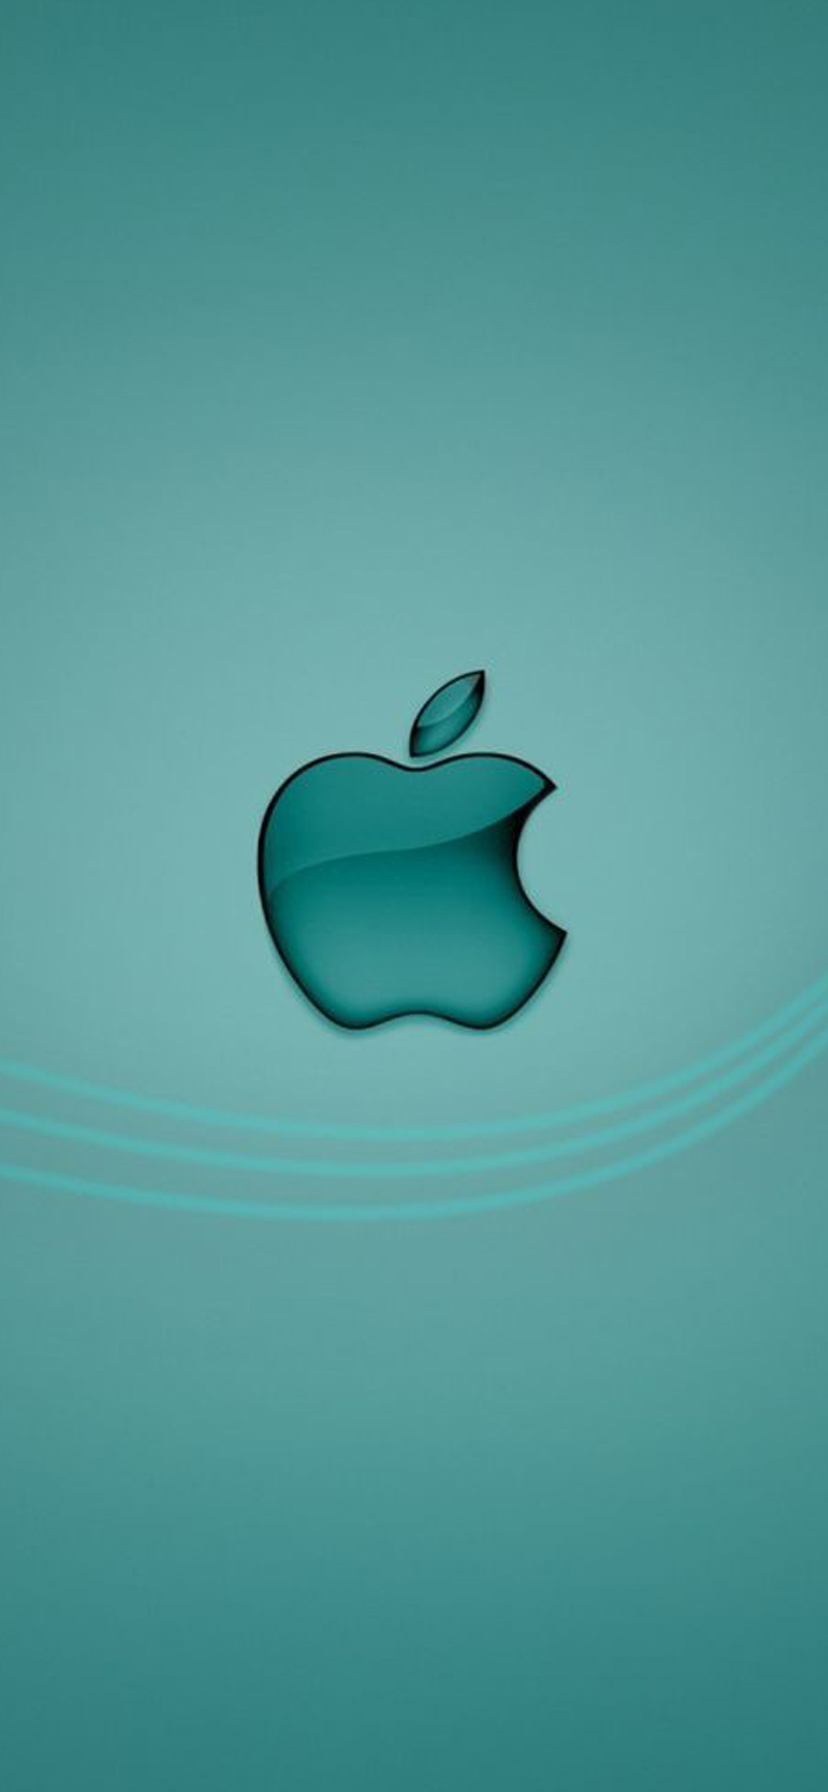 10 Alternative Wallpapers For Apple Iphone 11 08 Green Tosca 3d Logo Hd Wallpapers Wallpapers Download High Resolution Wallpapers